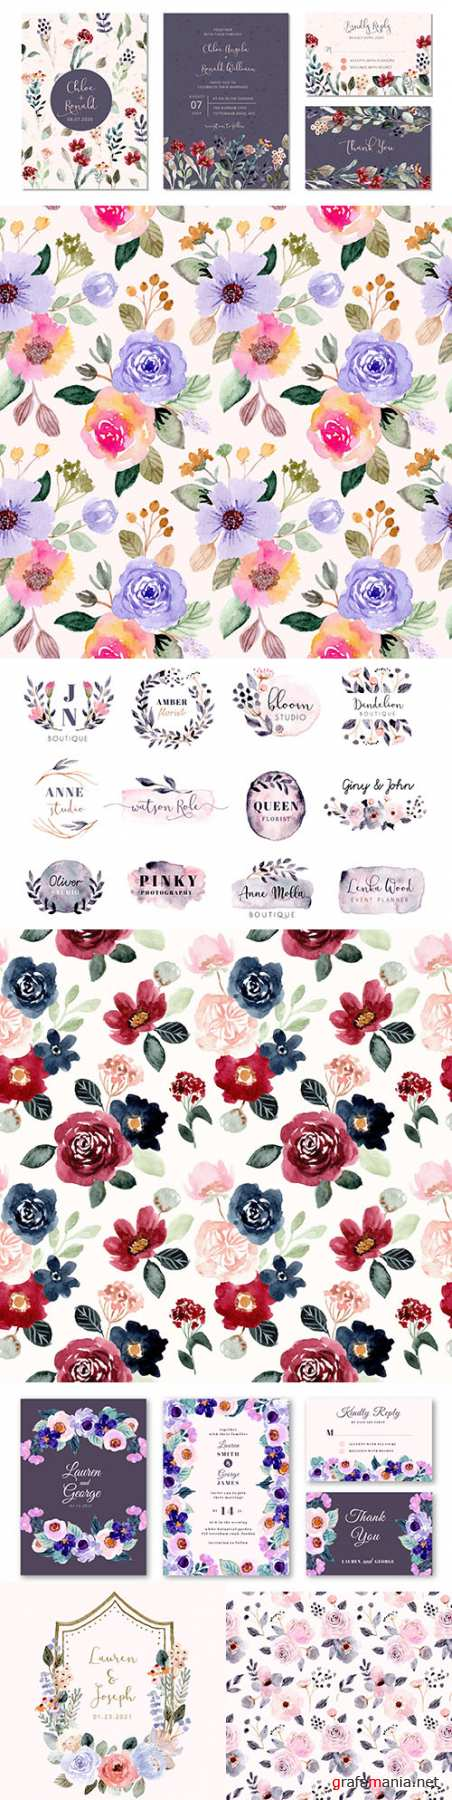 Wedding invitation and floral watercolor pattern